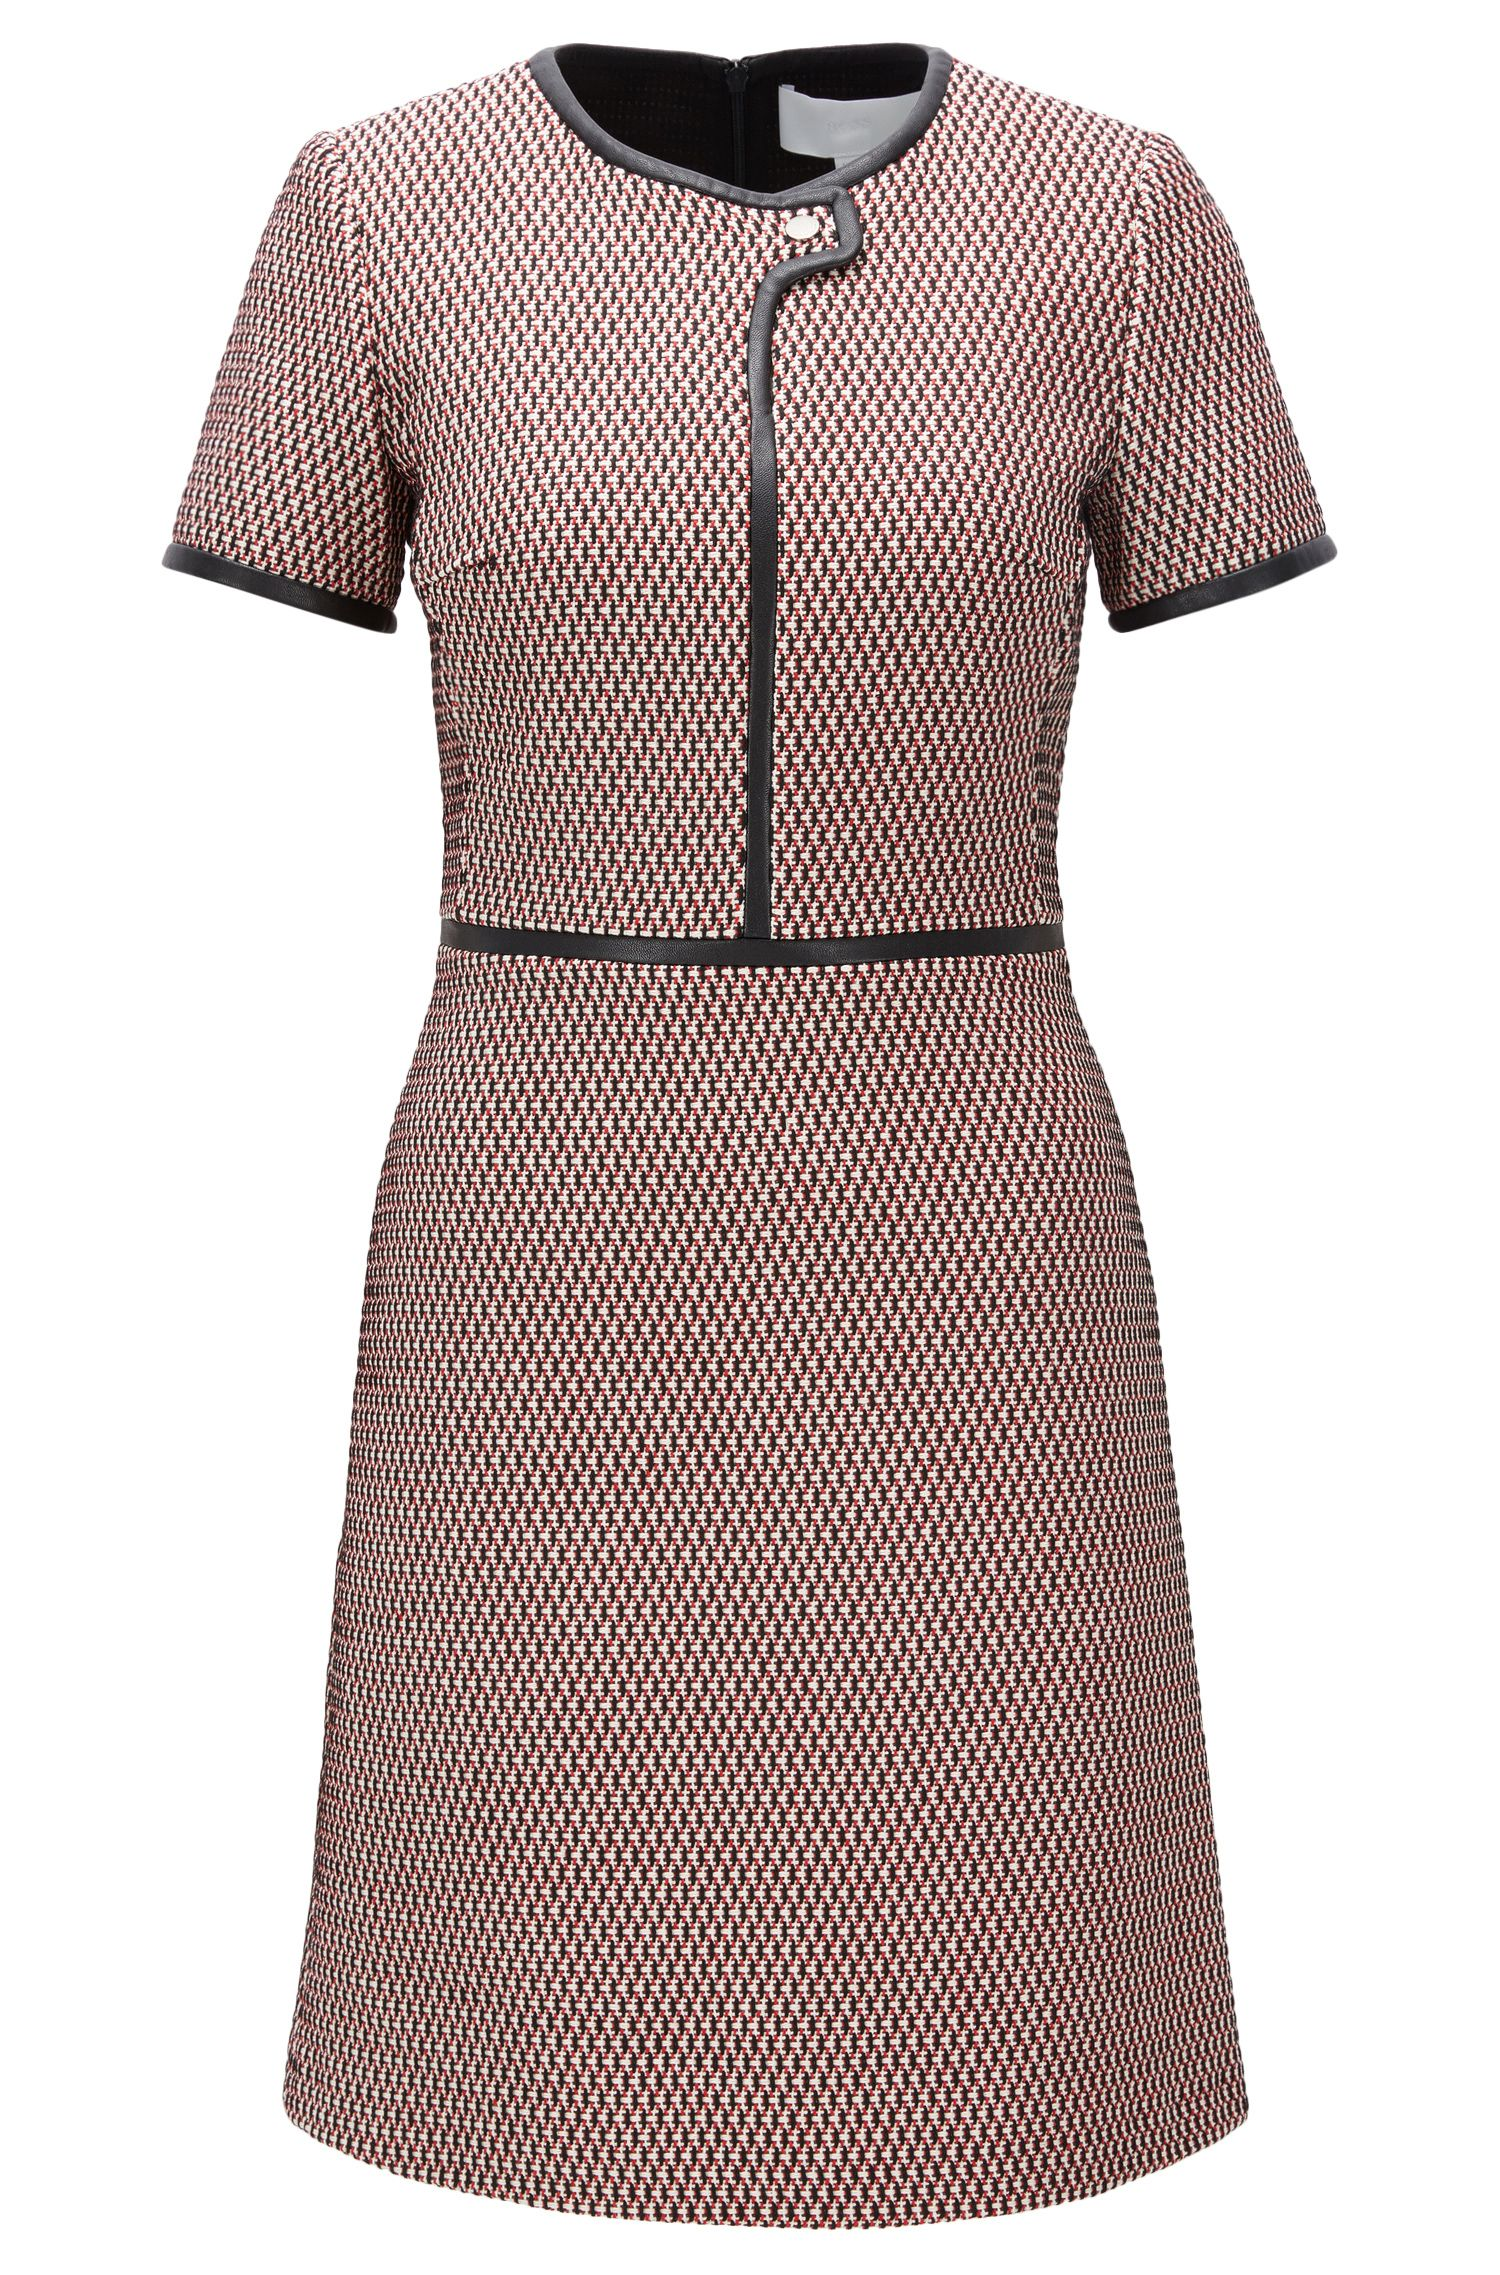 Dobby-Knit Cotton Blend Dress | Dagardi